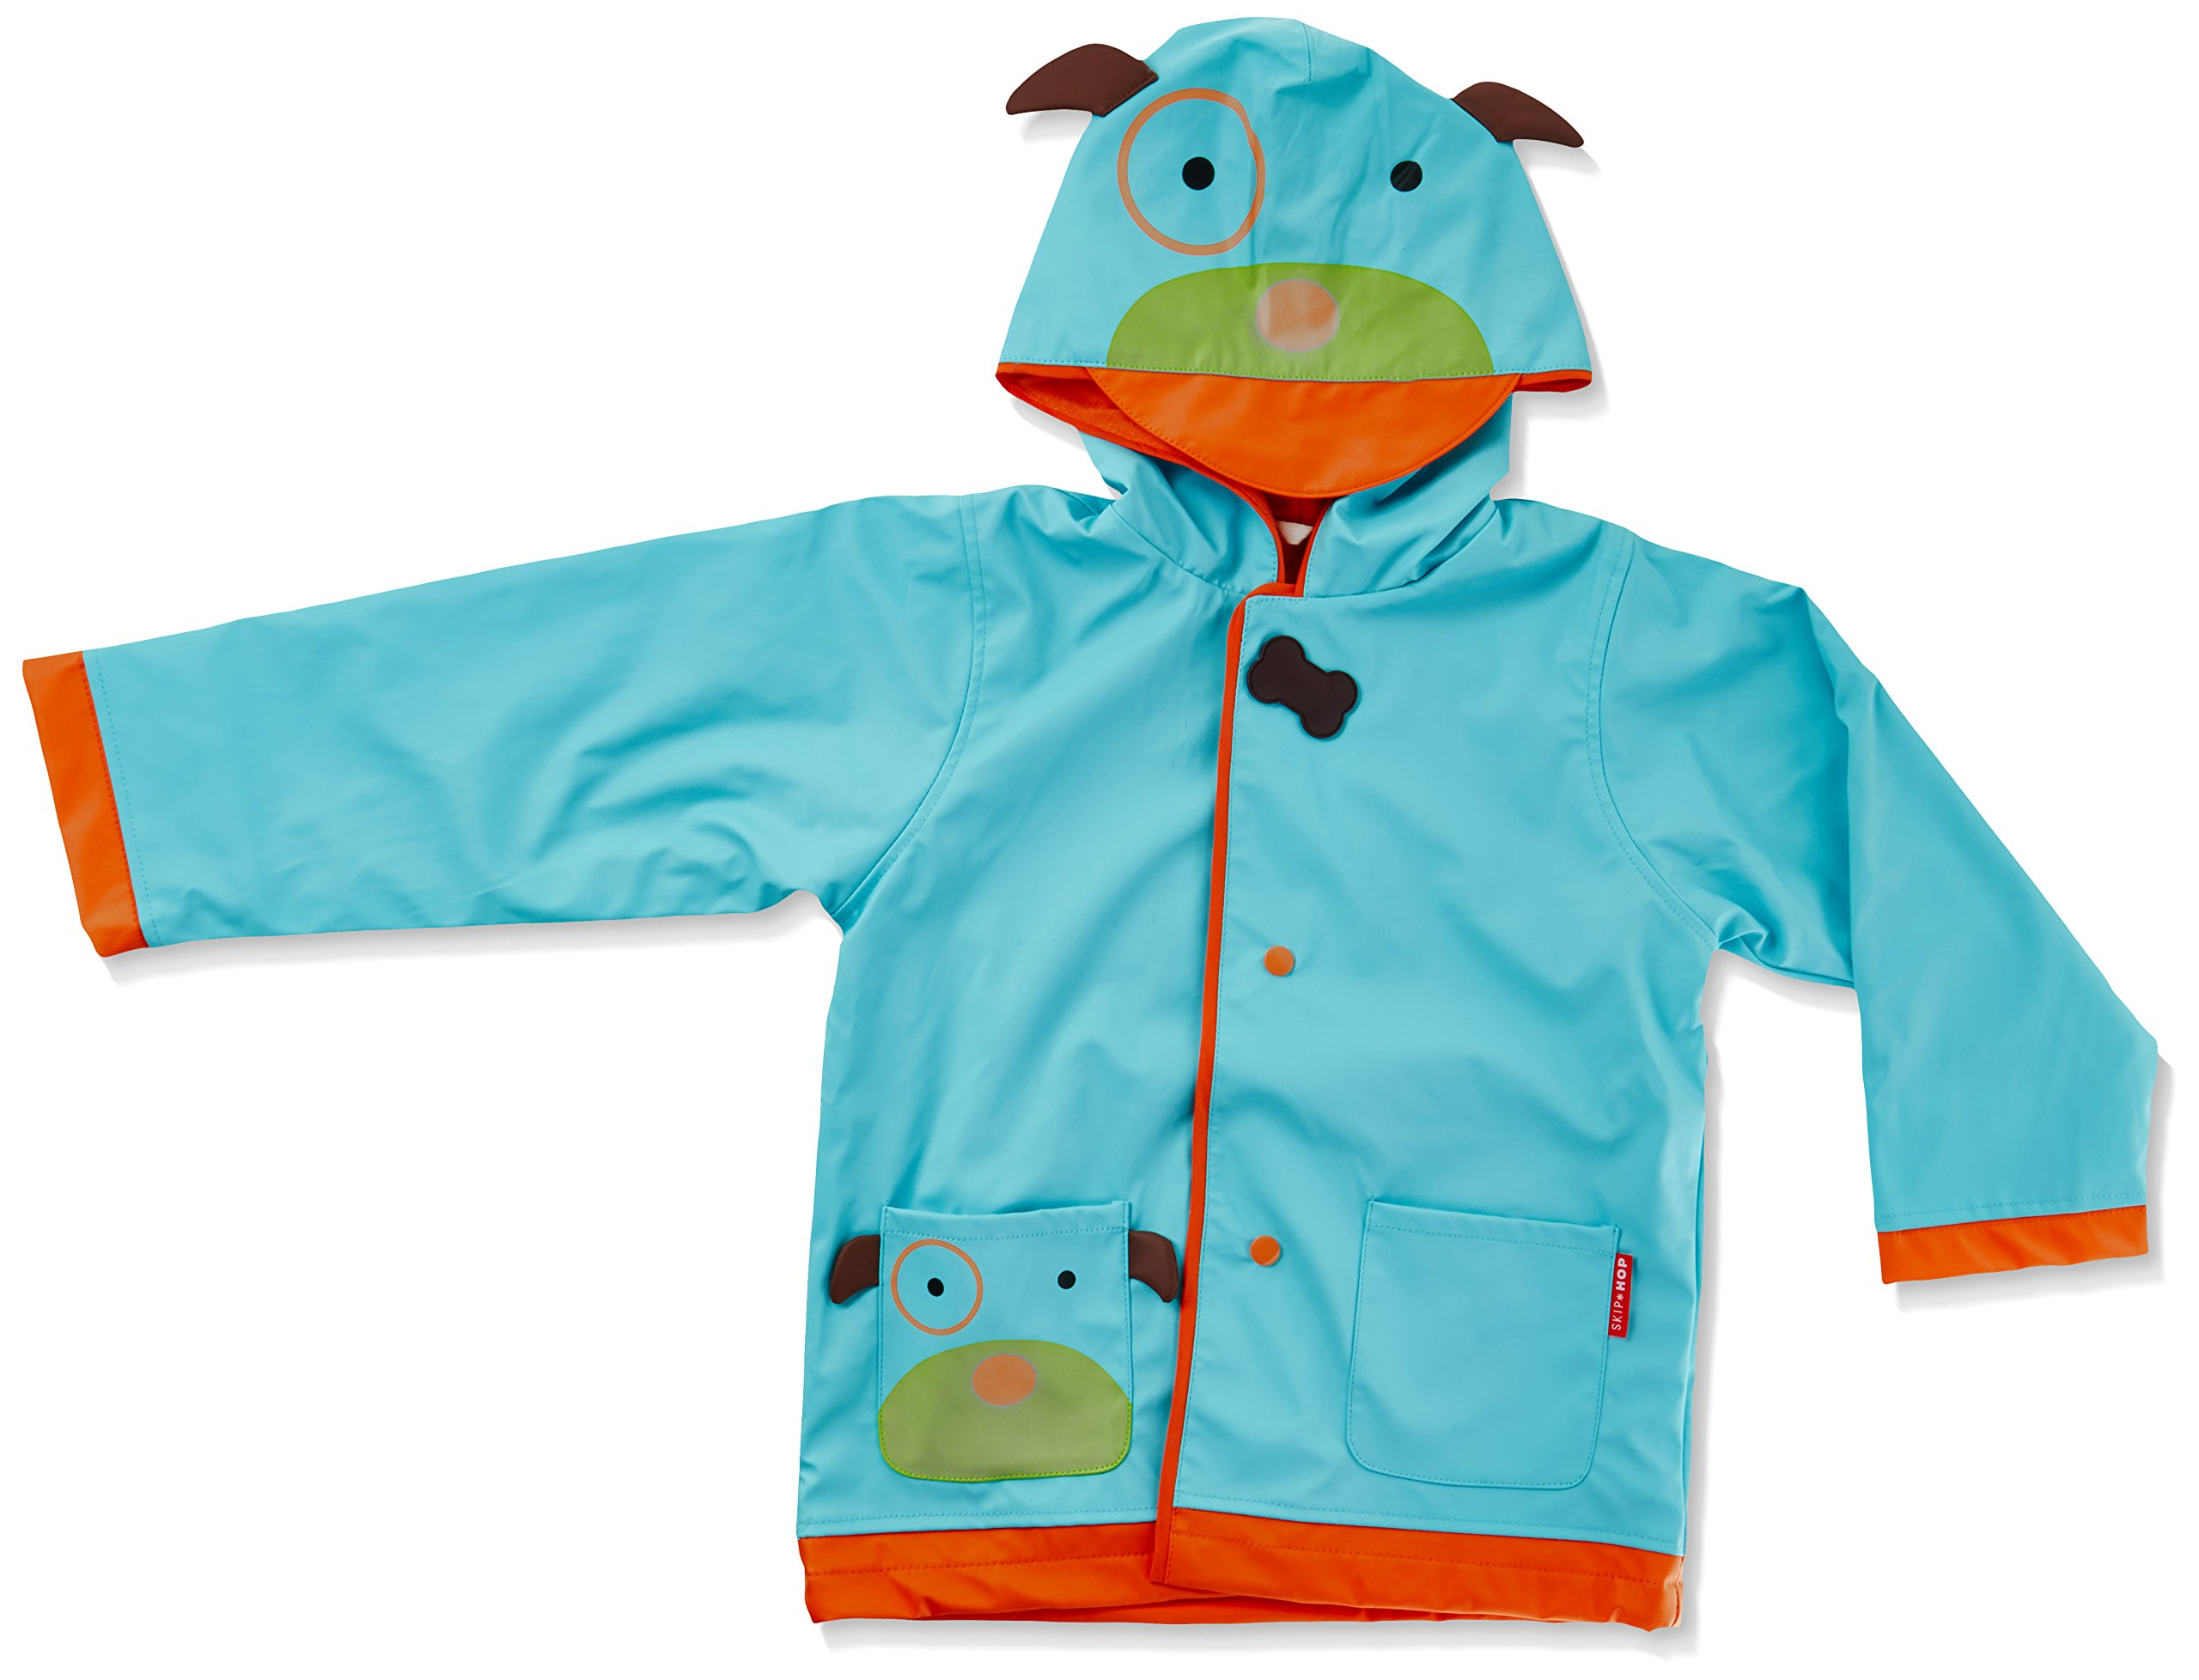 SkipHop Little Kid & Toddler Girls' Zoo Raincoat, Darby Dog, Small (2) by Skip Hop